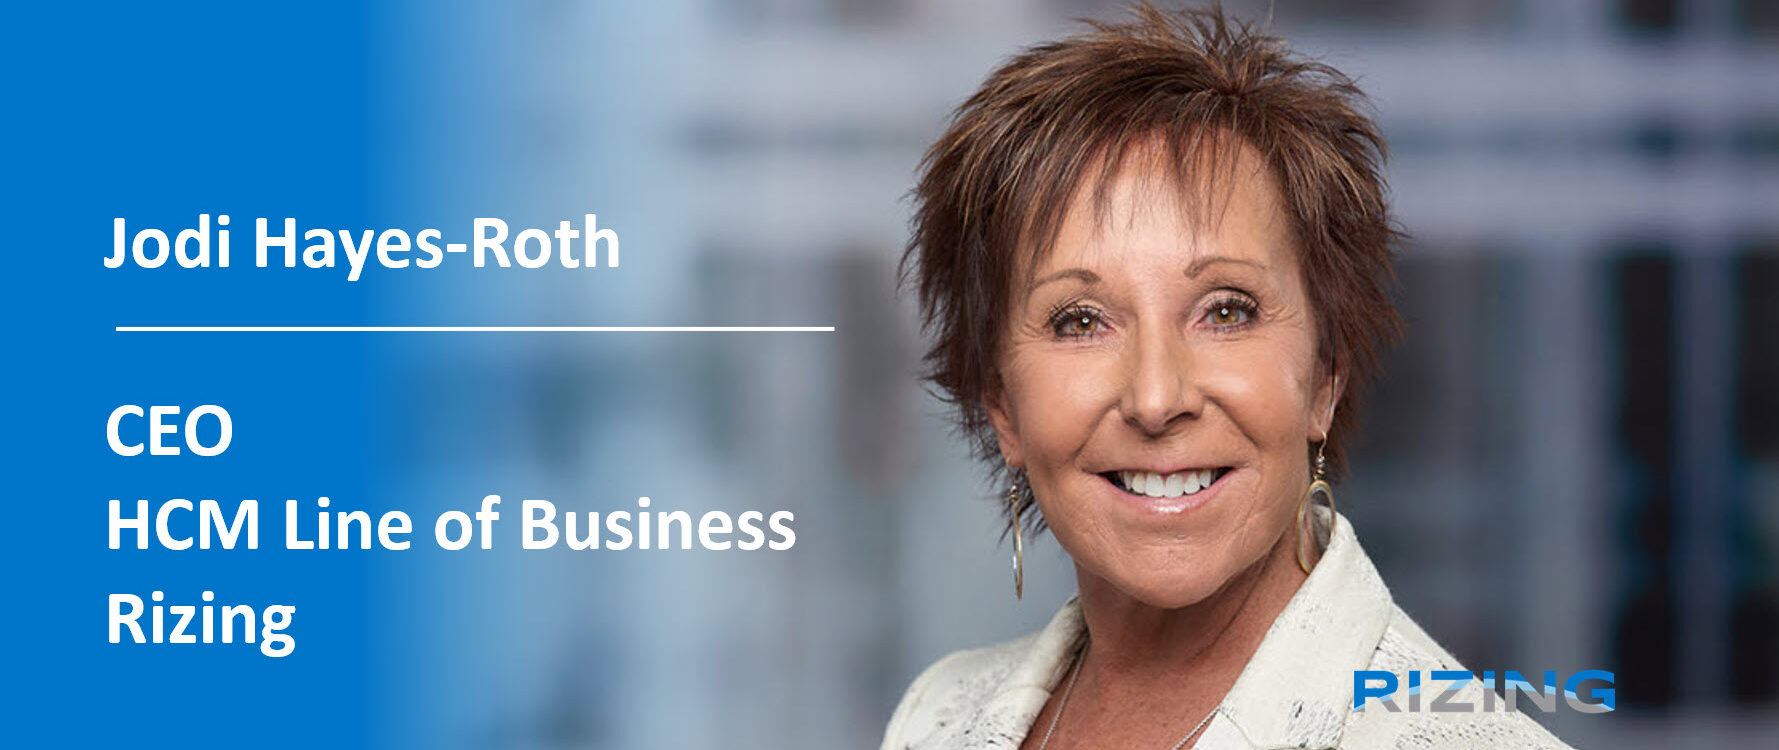 Rizing announces Jodi Hayes-Roth as CEO of Human Capital Management Line of Business featured image